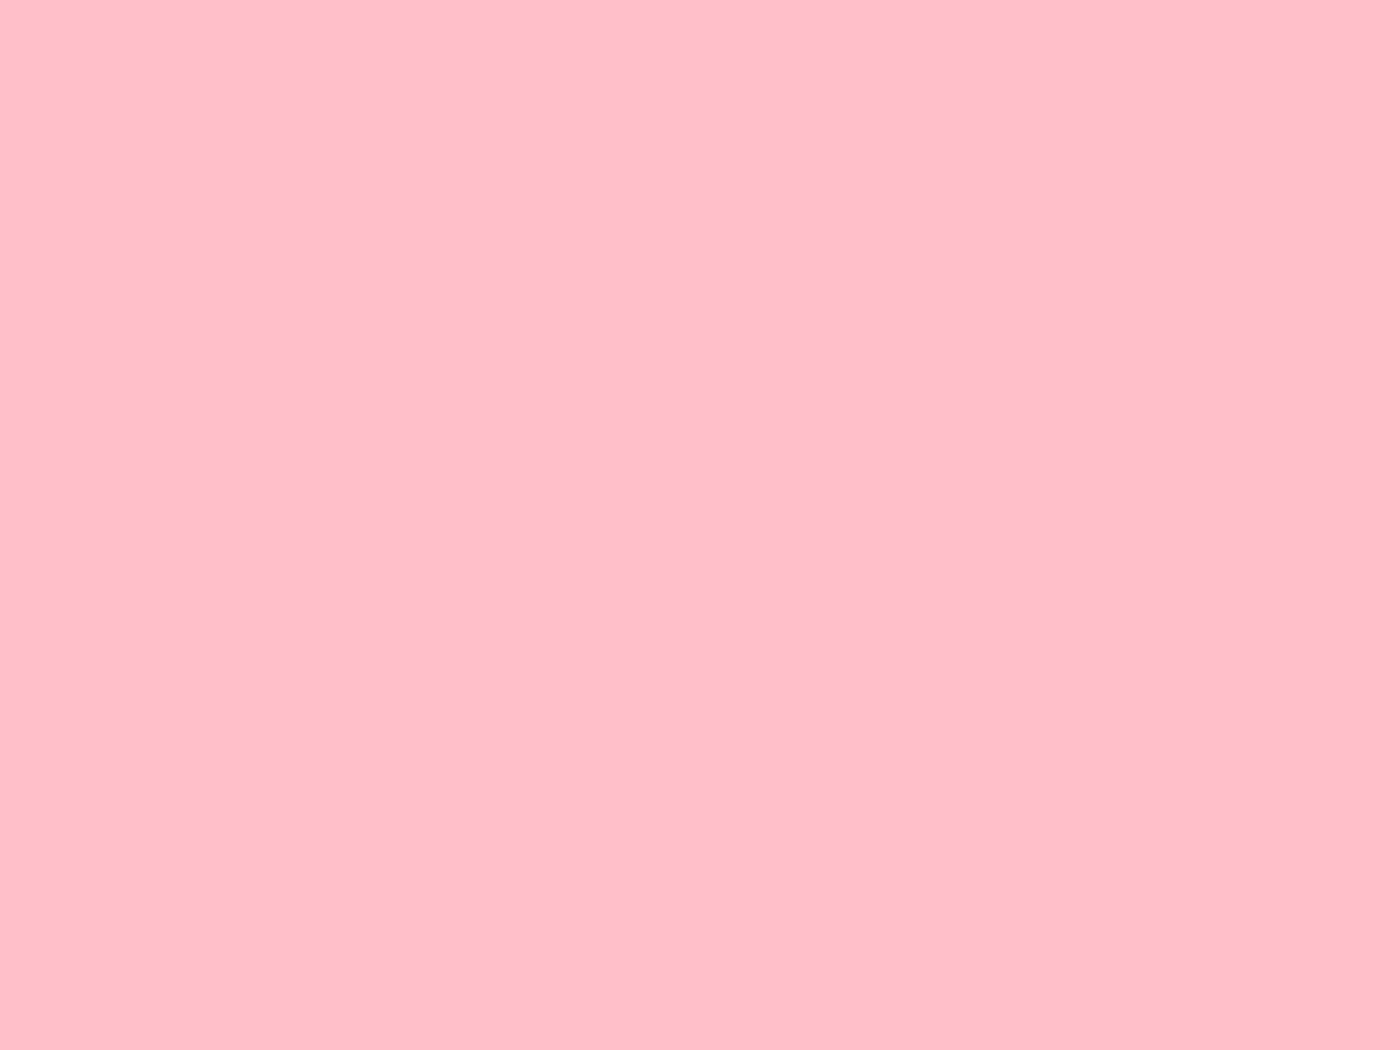 1400x1050 Pink Solid Color Background